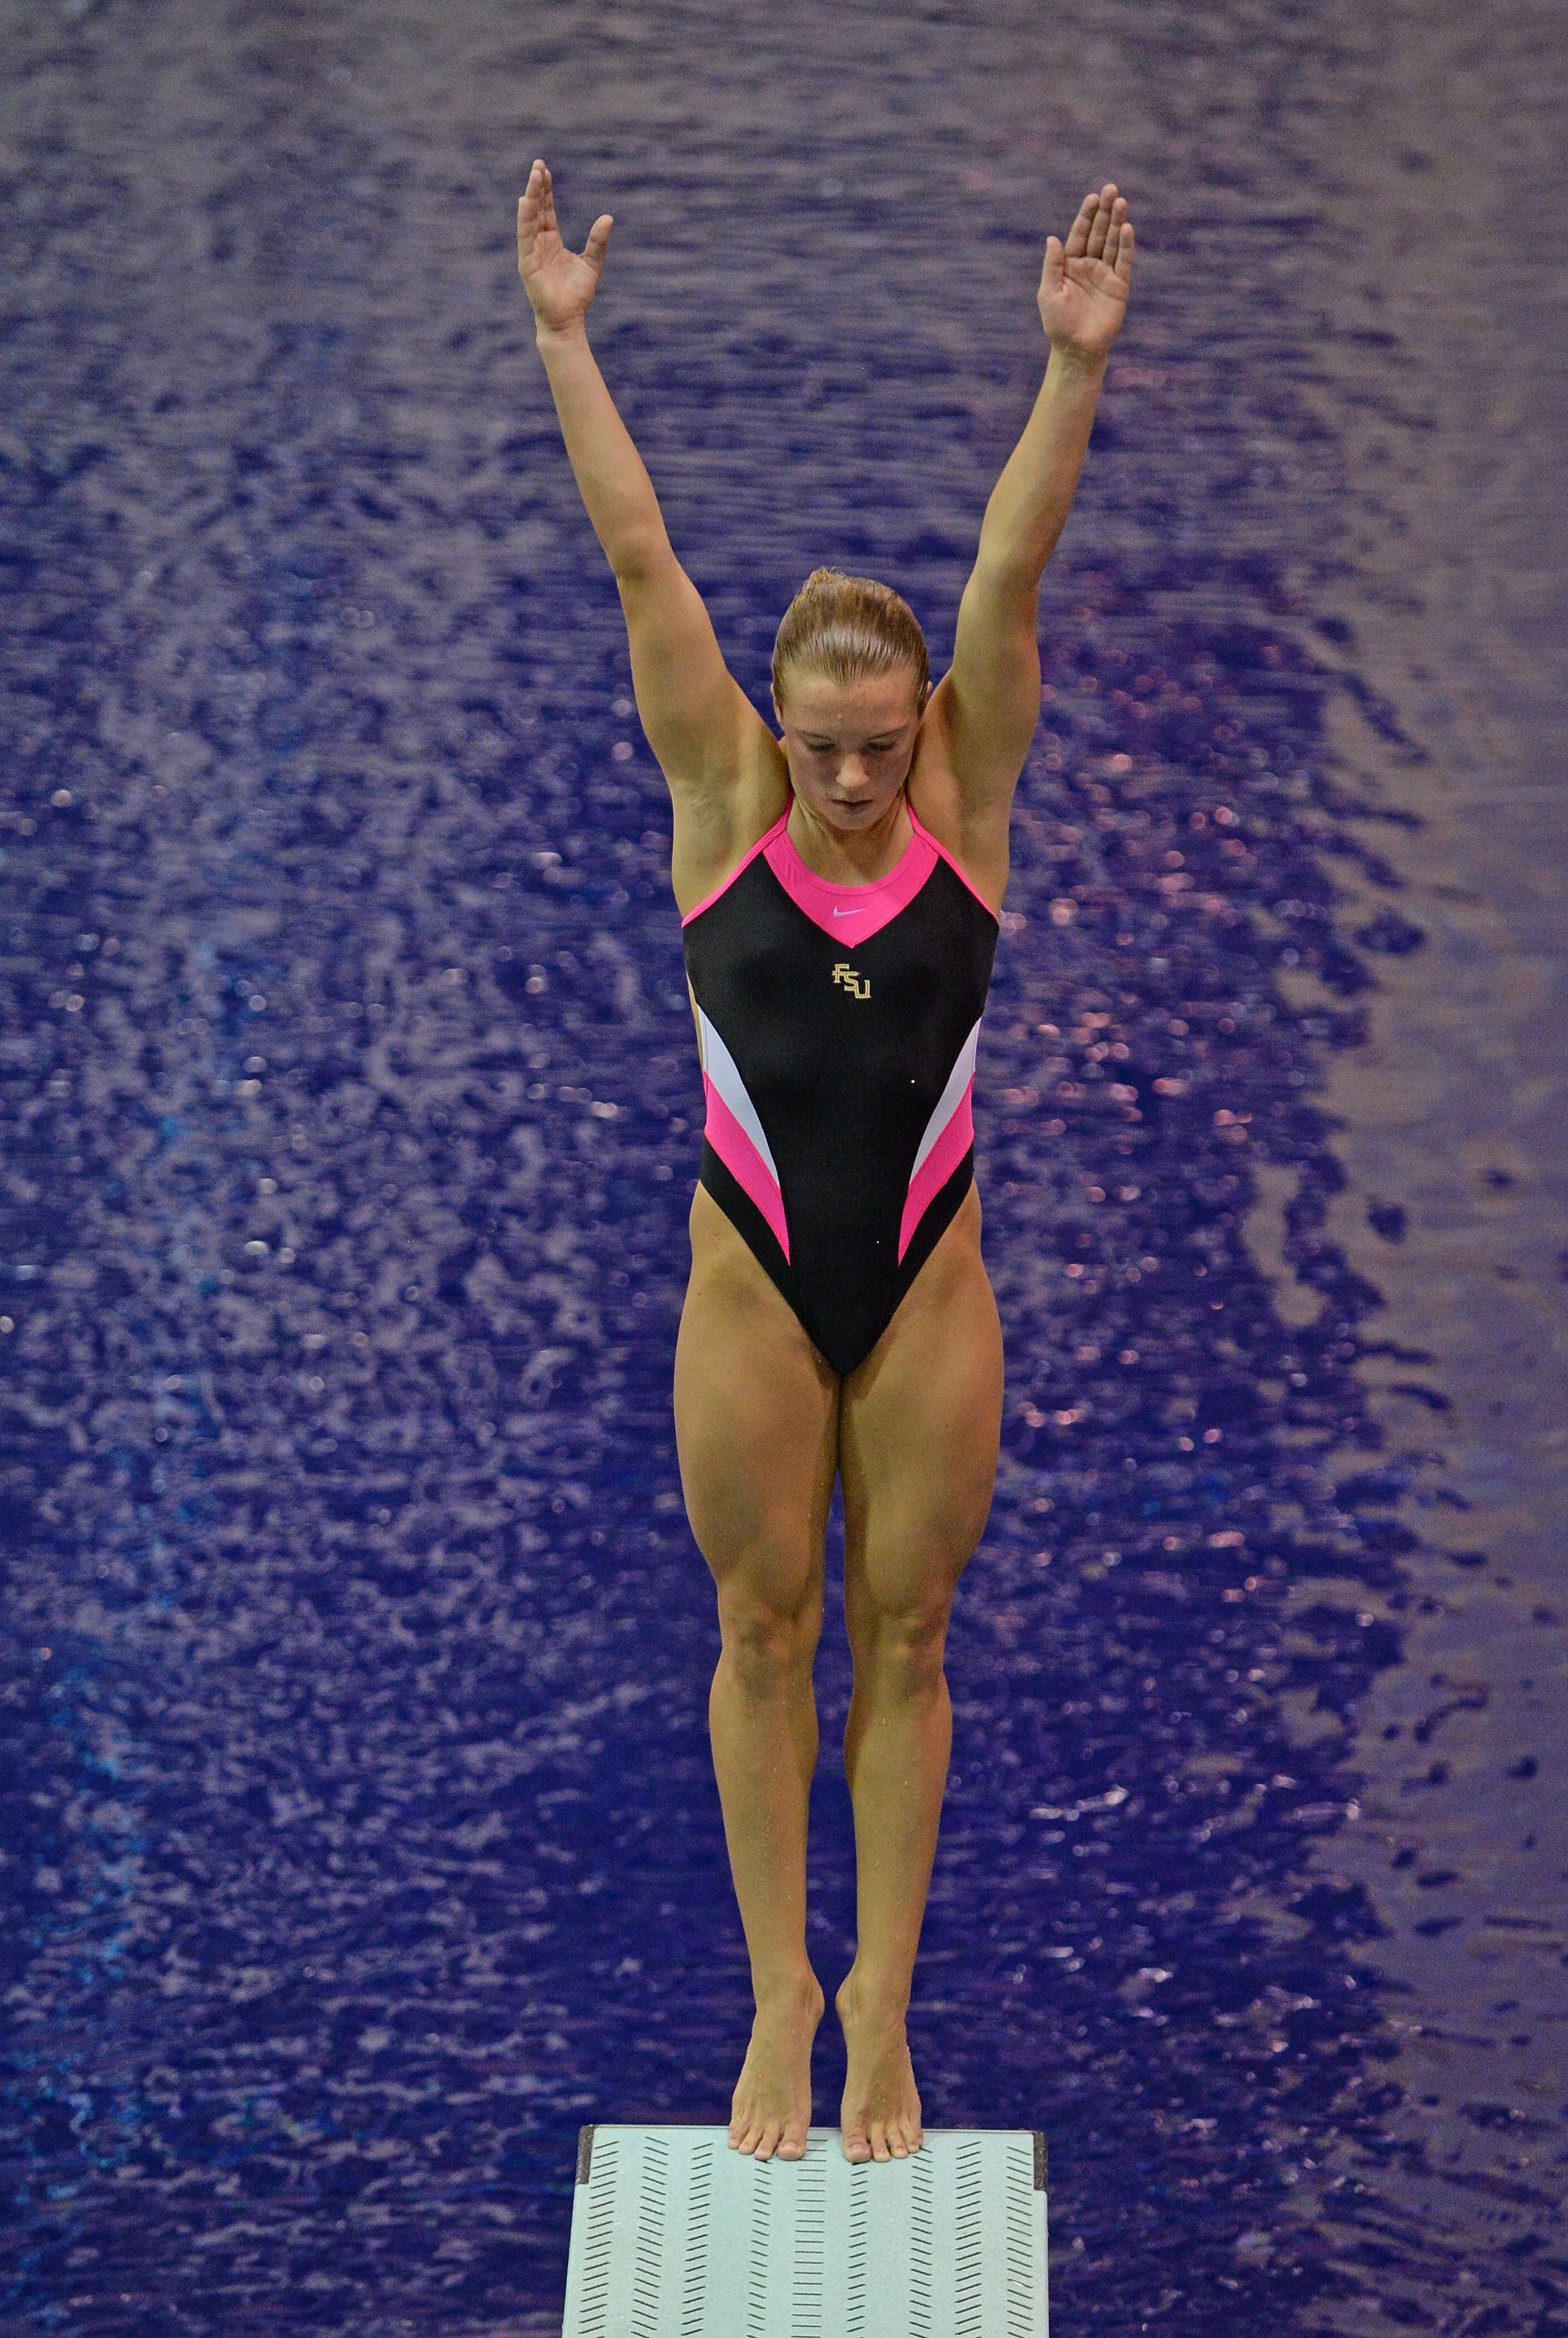 Katrina Young gets ready for a 1-meter dive - Mitch White